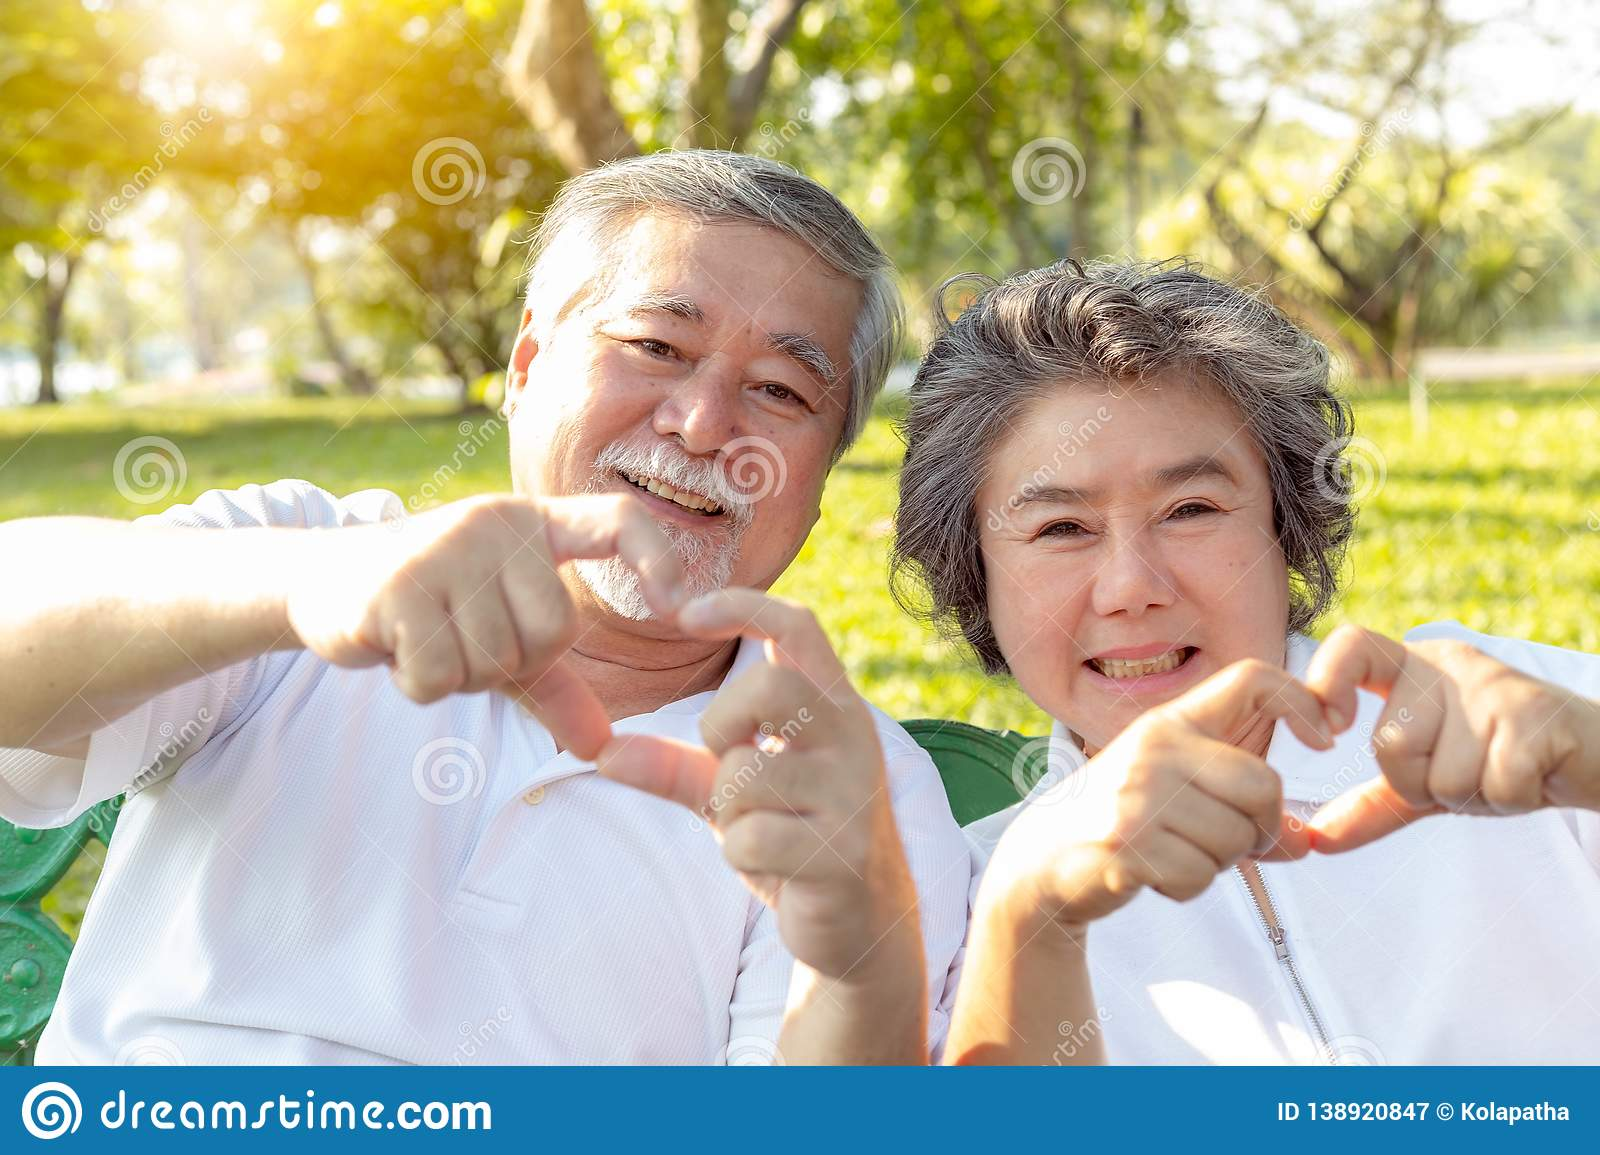 Grandma and grandpa or grandparents make symbol of love by using hands and fingers for making hearts. Lovely older couple or